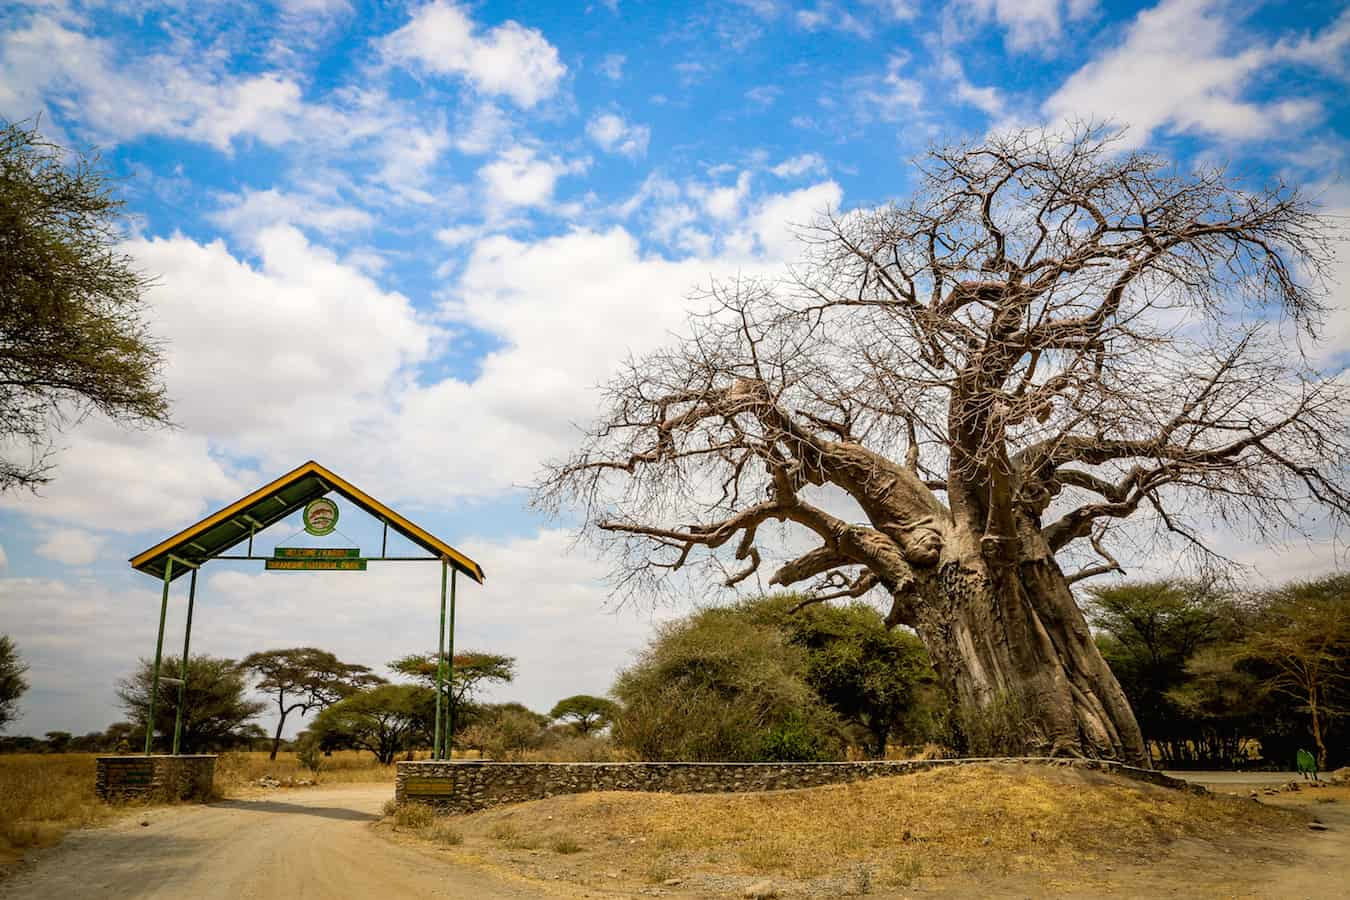 Tarangire National Park Entrance. Tanzania